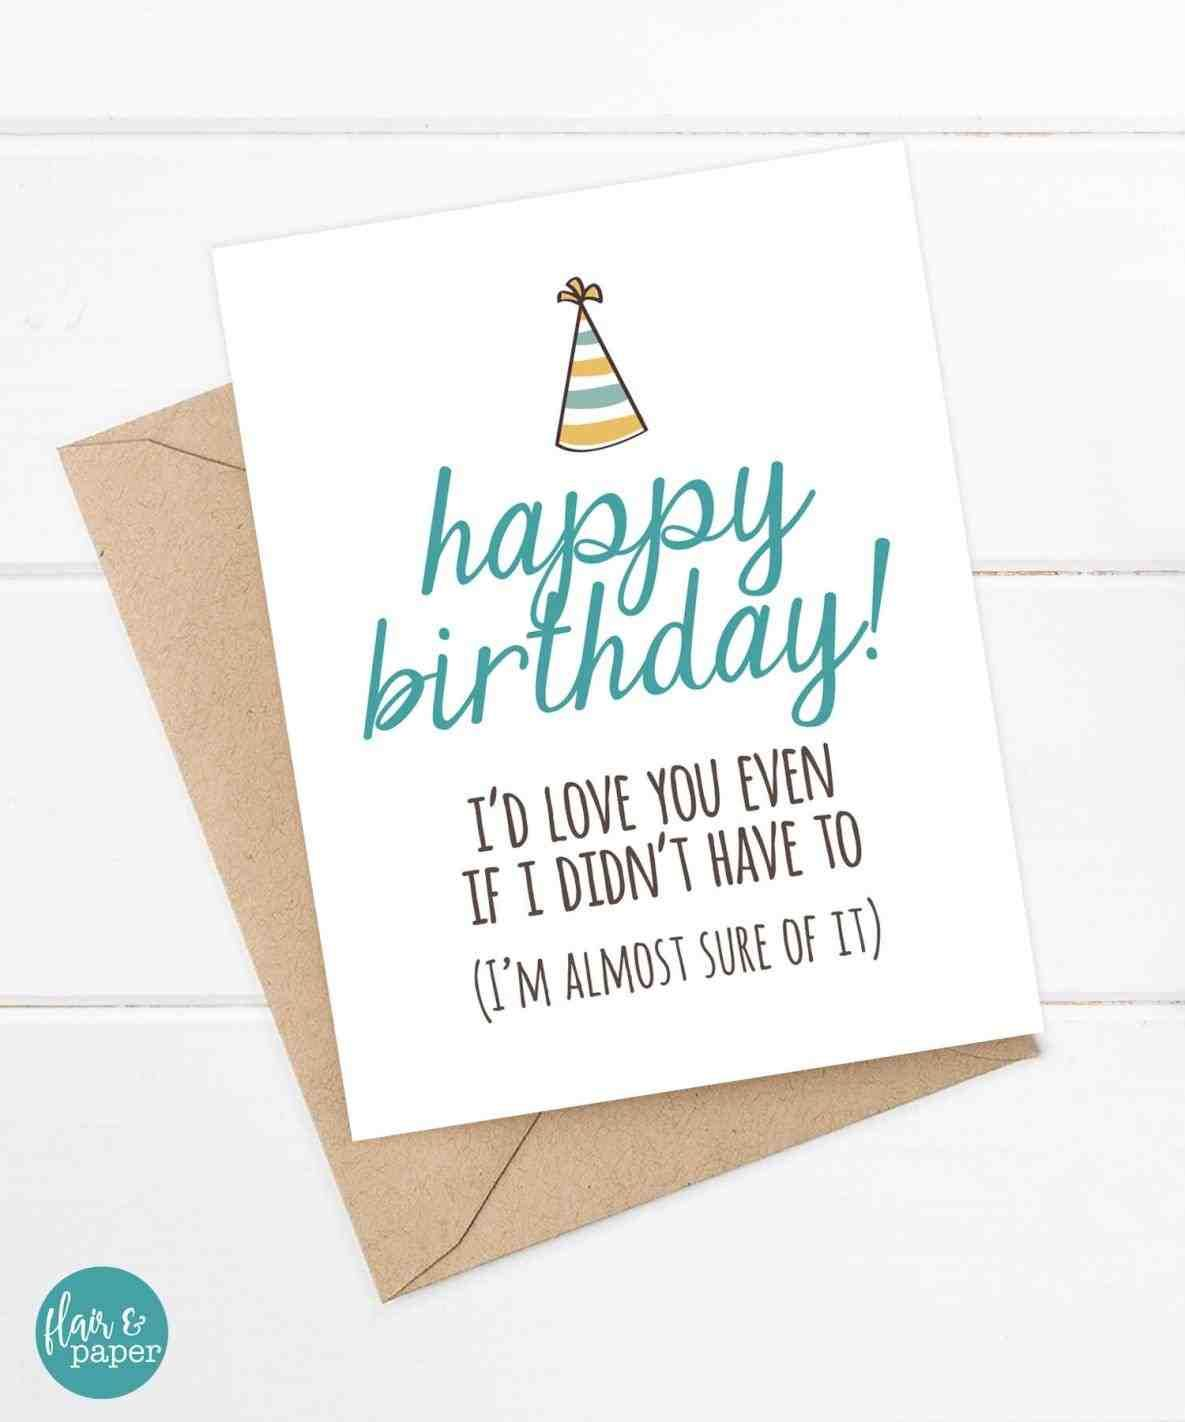 Bday card6 bday cards bday card7 boyfriend birthday cards funny bday card6 bday cards bday card7 boyfriend birthday cards funny to get ideas how to make your own birthday card design 7 happy birthday romantic wishes bookmarktalkfo Images